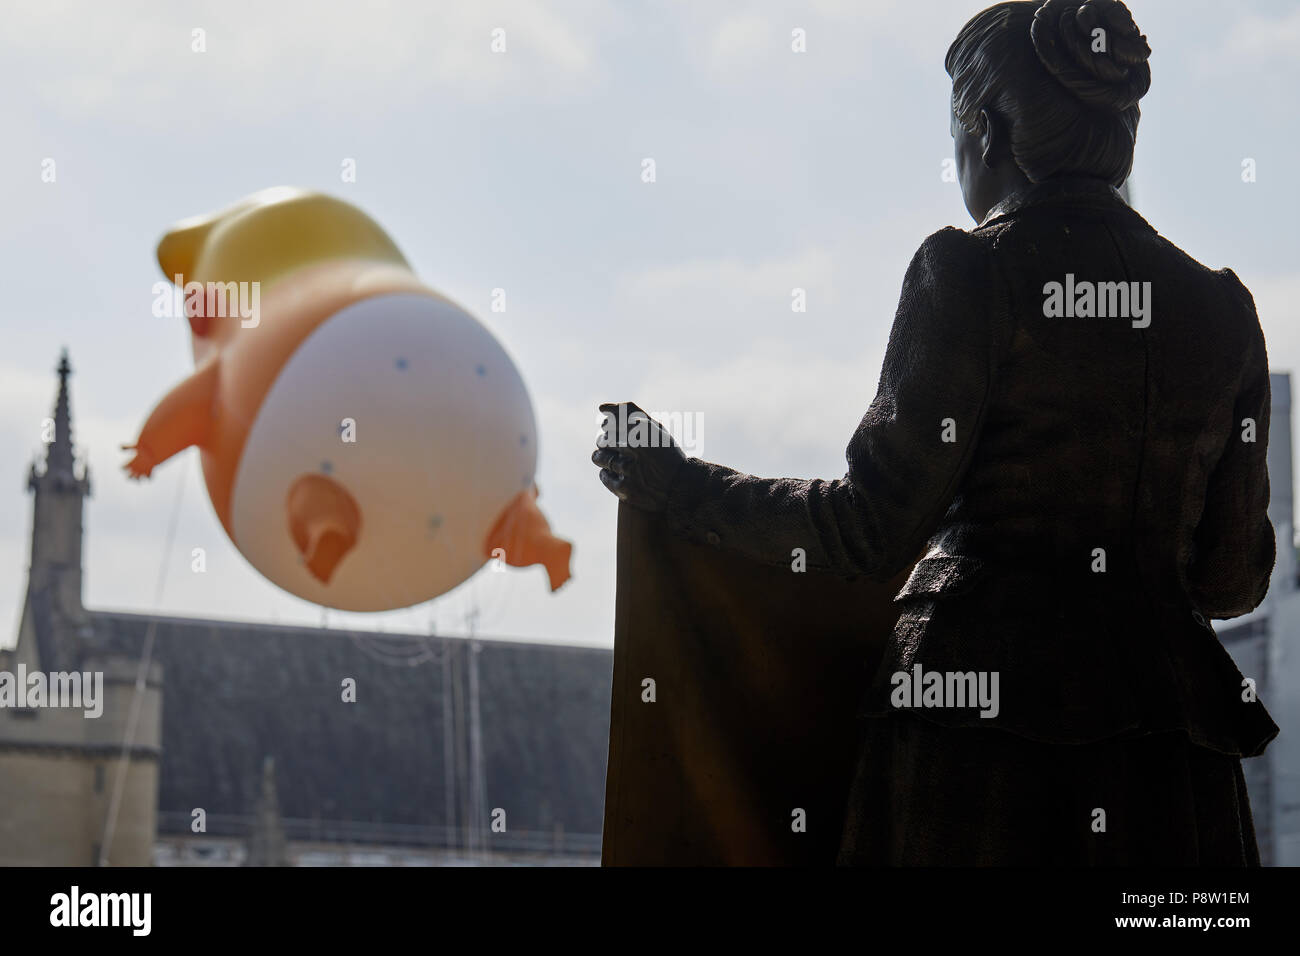 London, U.K. - 13 July 2018: The statue of suffragist Millicent Fawcett looks out at a balloon mocking Donald Trump in Parliament Square, London. - Stock Image